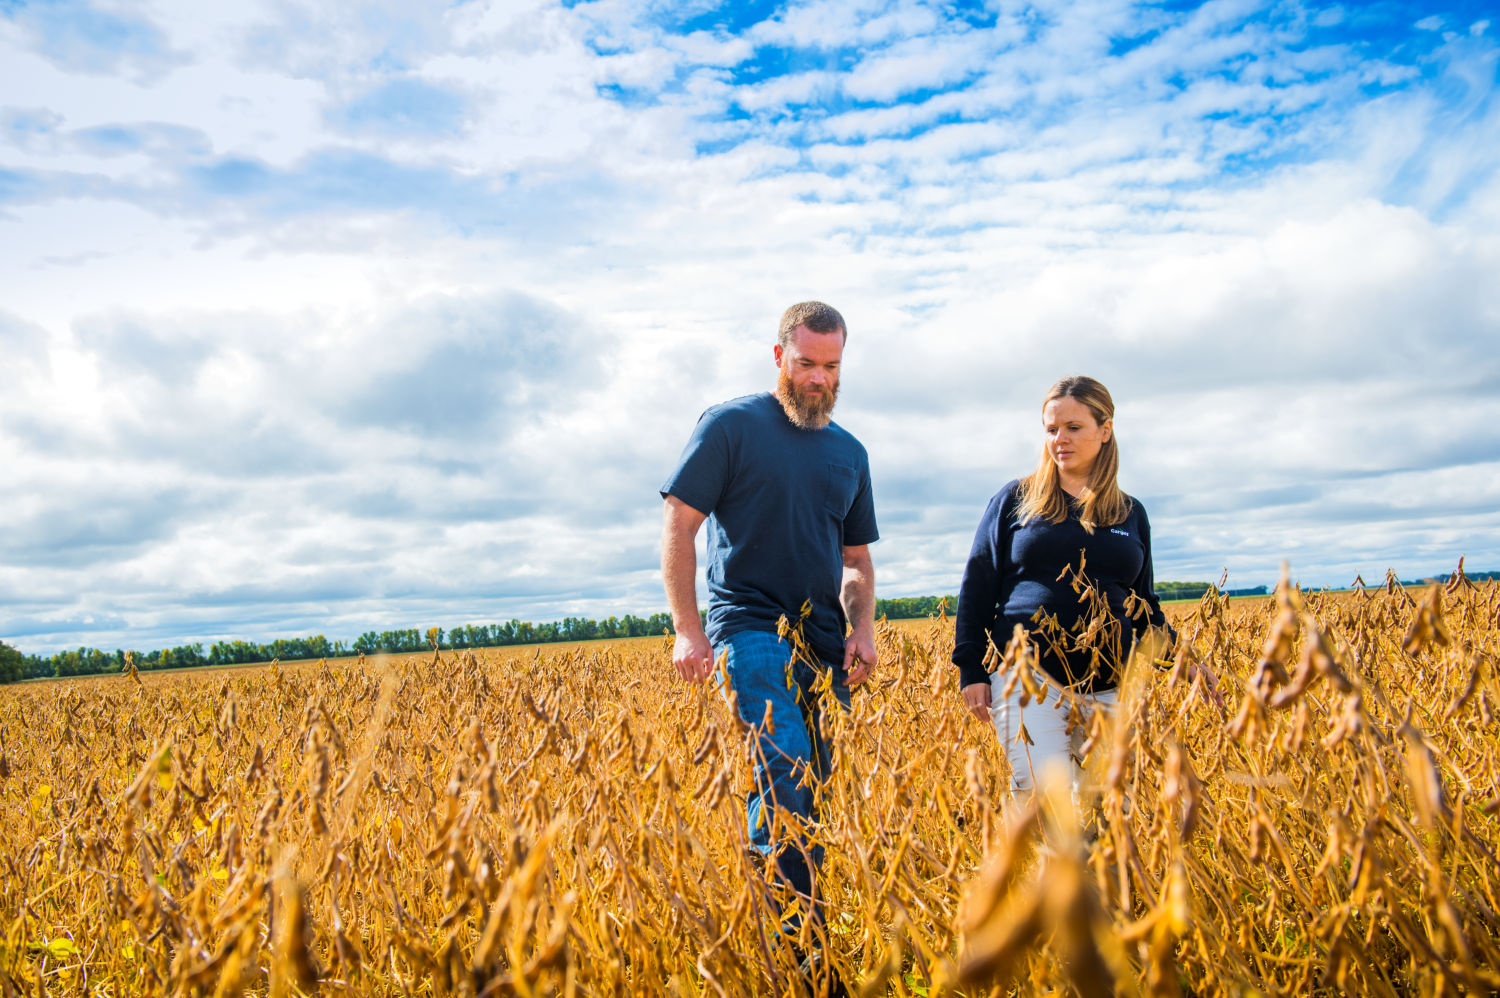 Farmers are some of the best stewards of our earth, focused on keeping it sustainable for generations to come